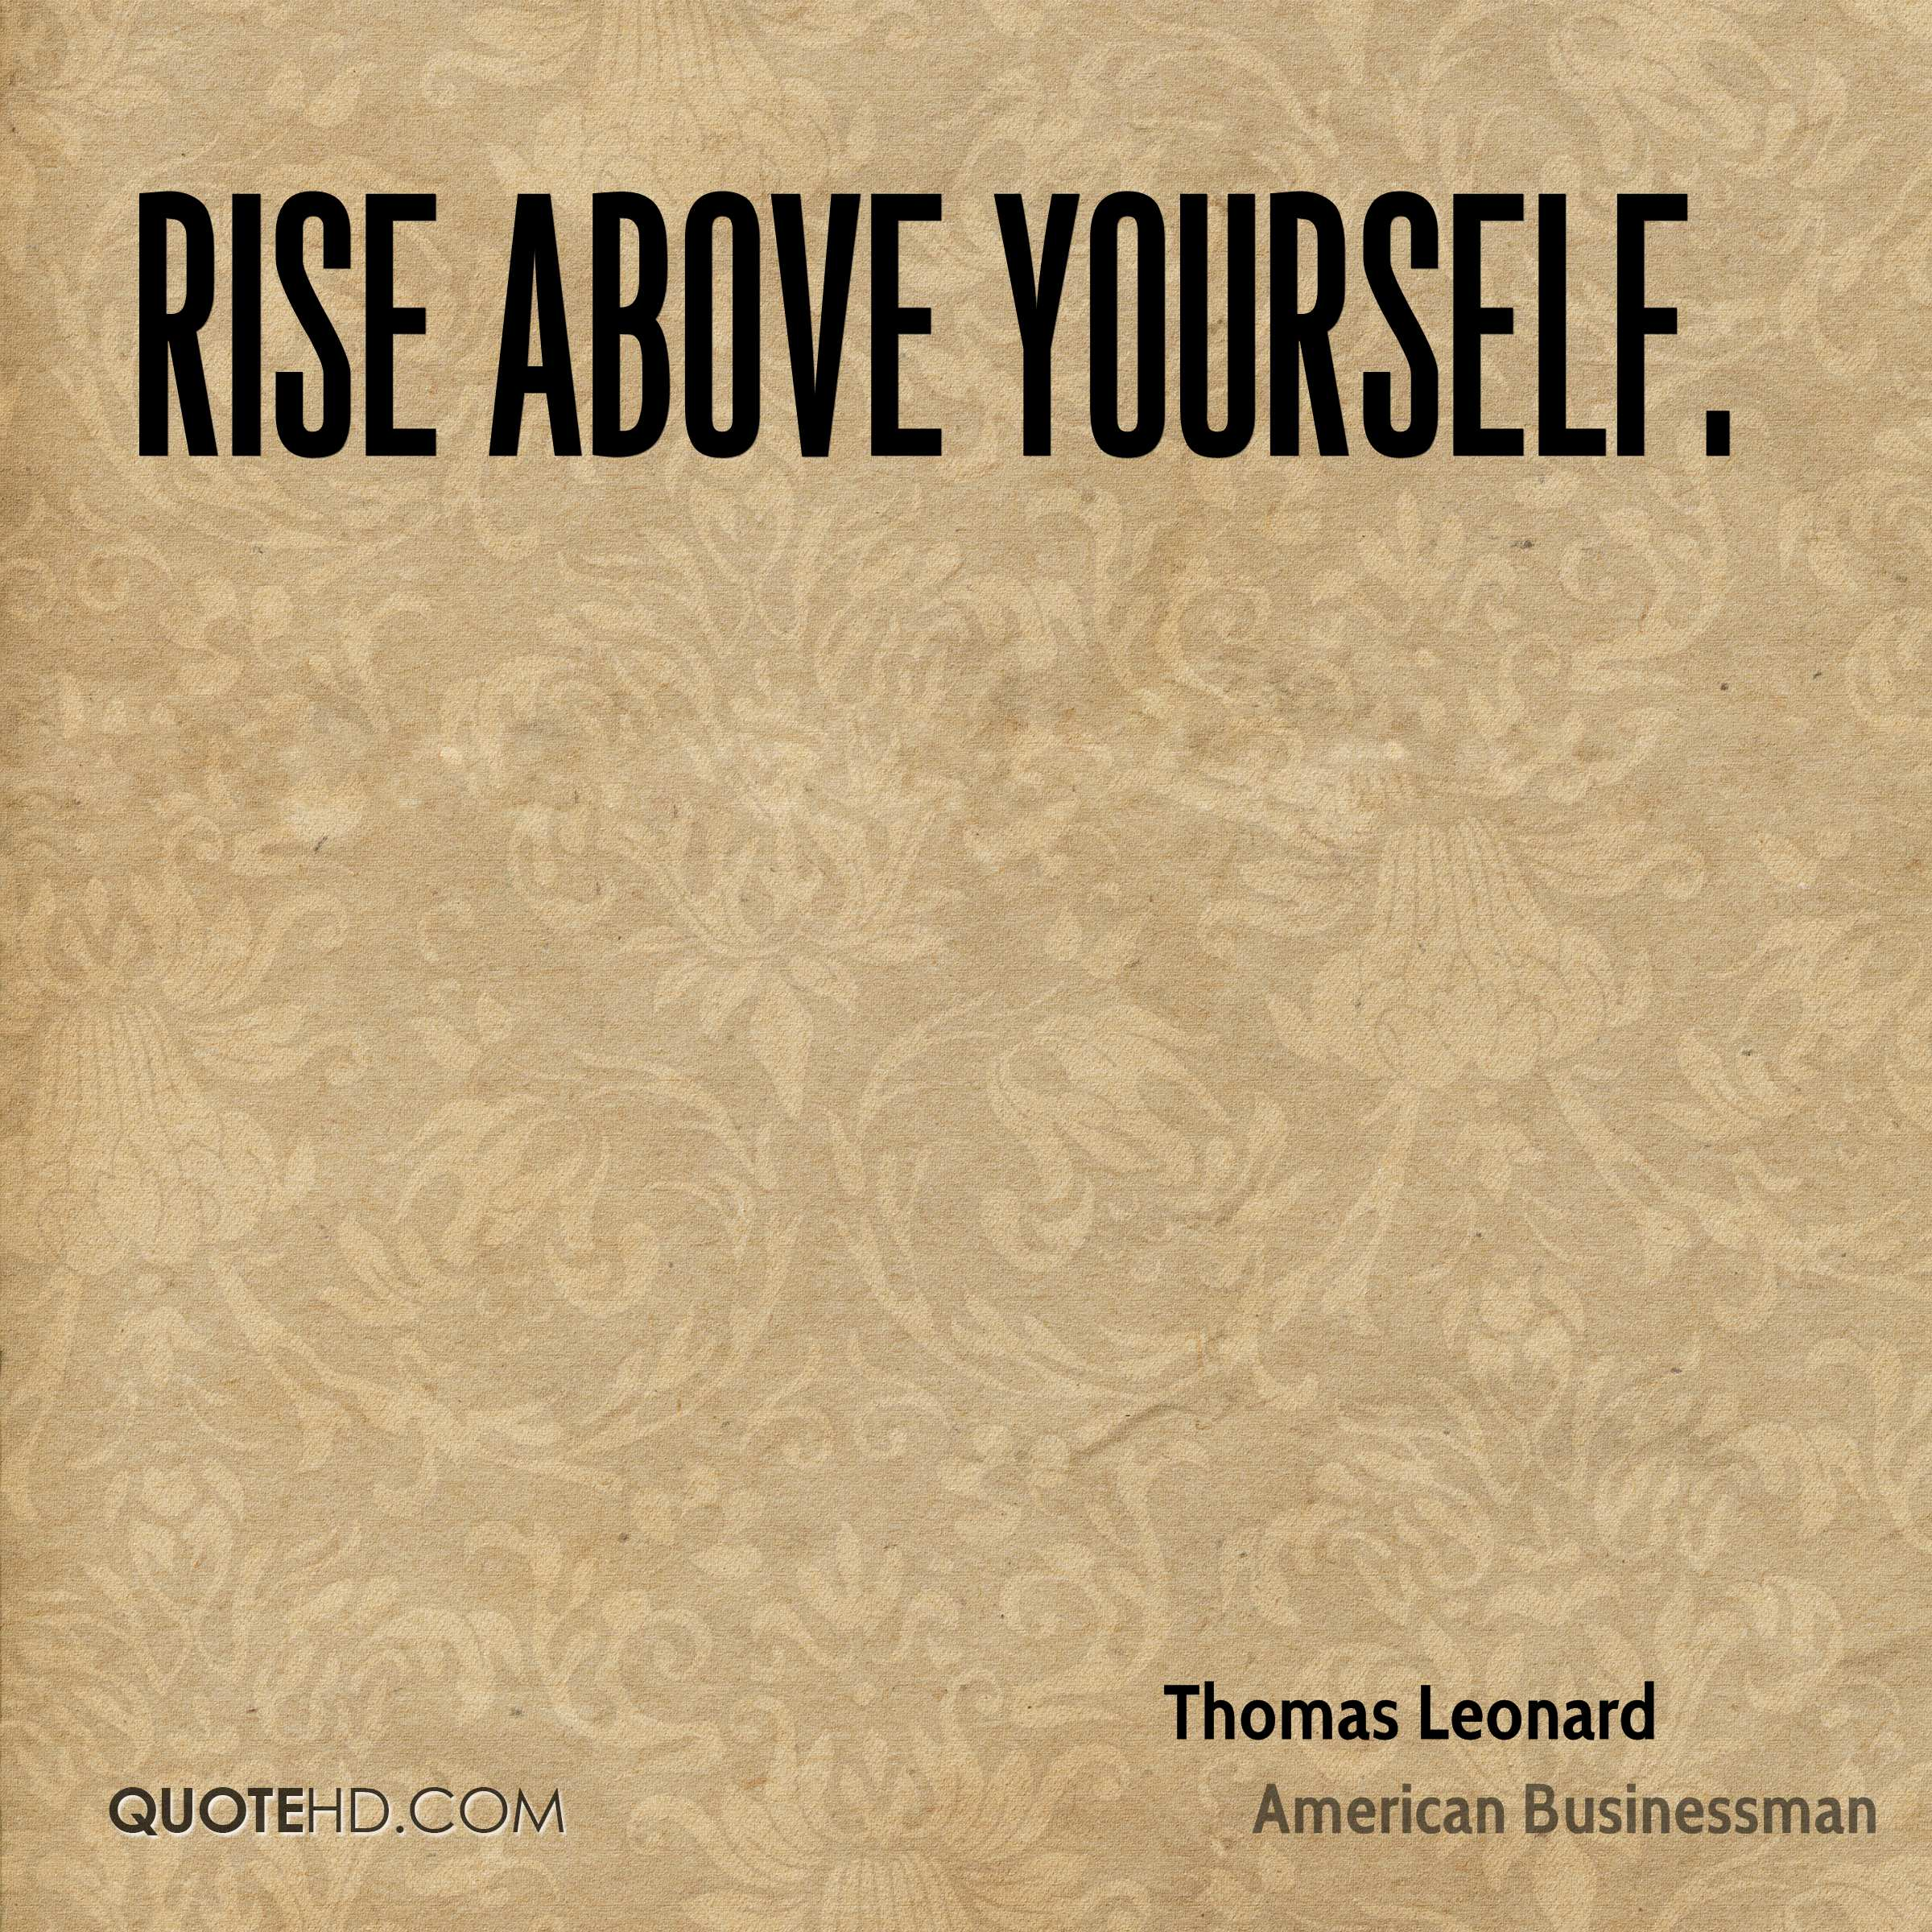 Rise above yourself.